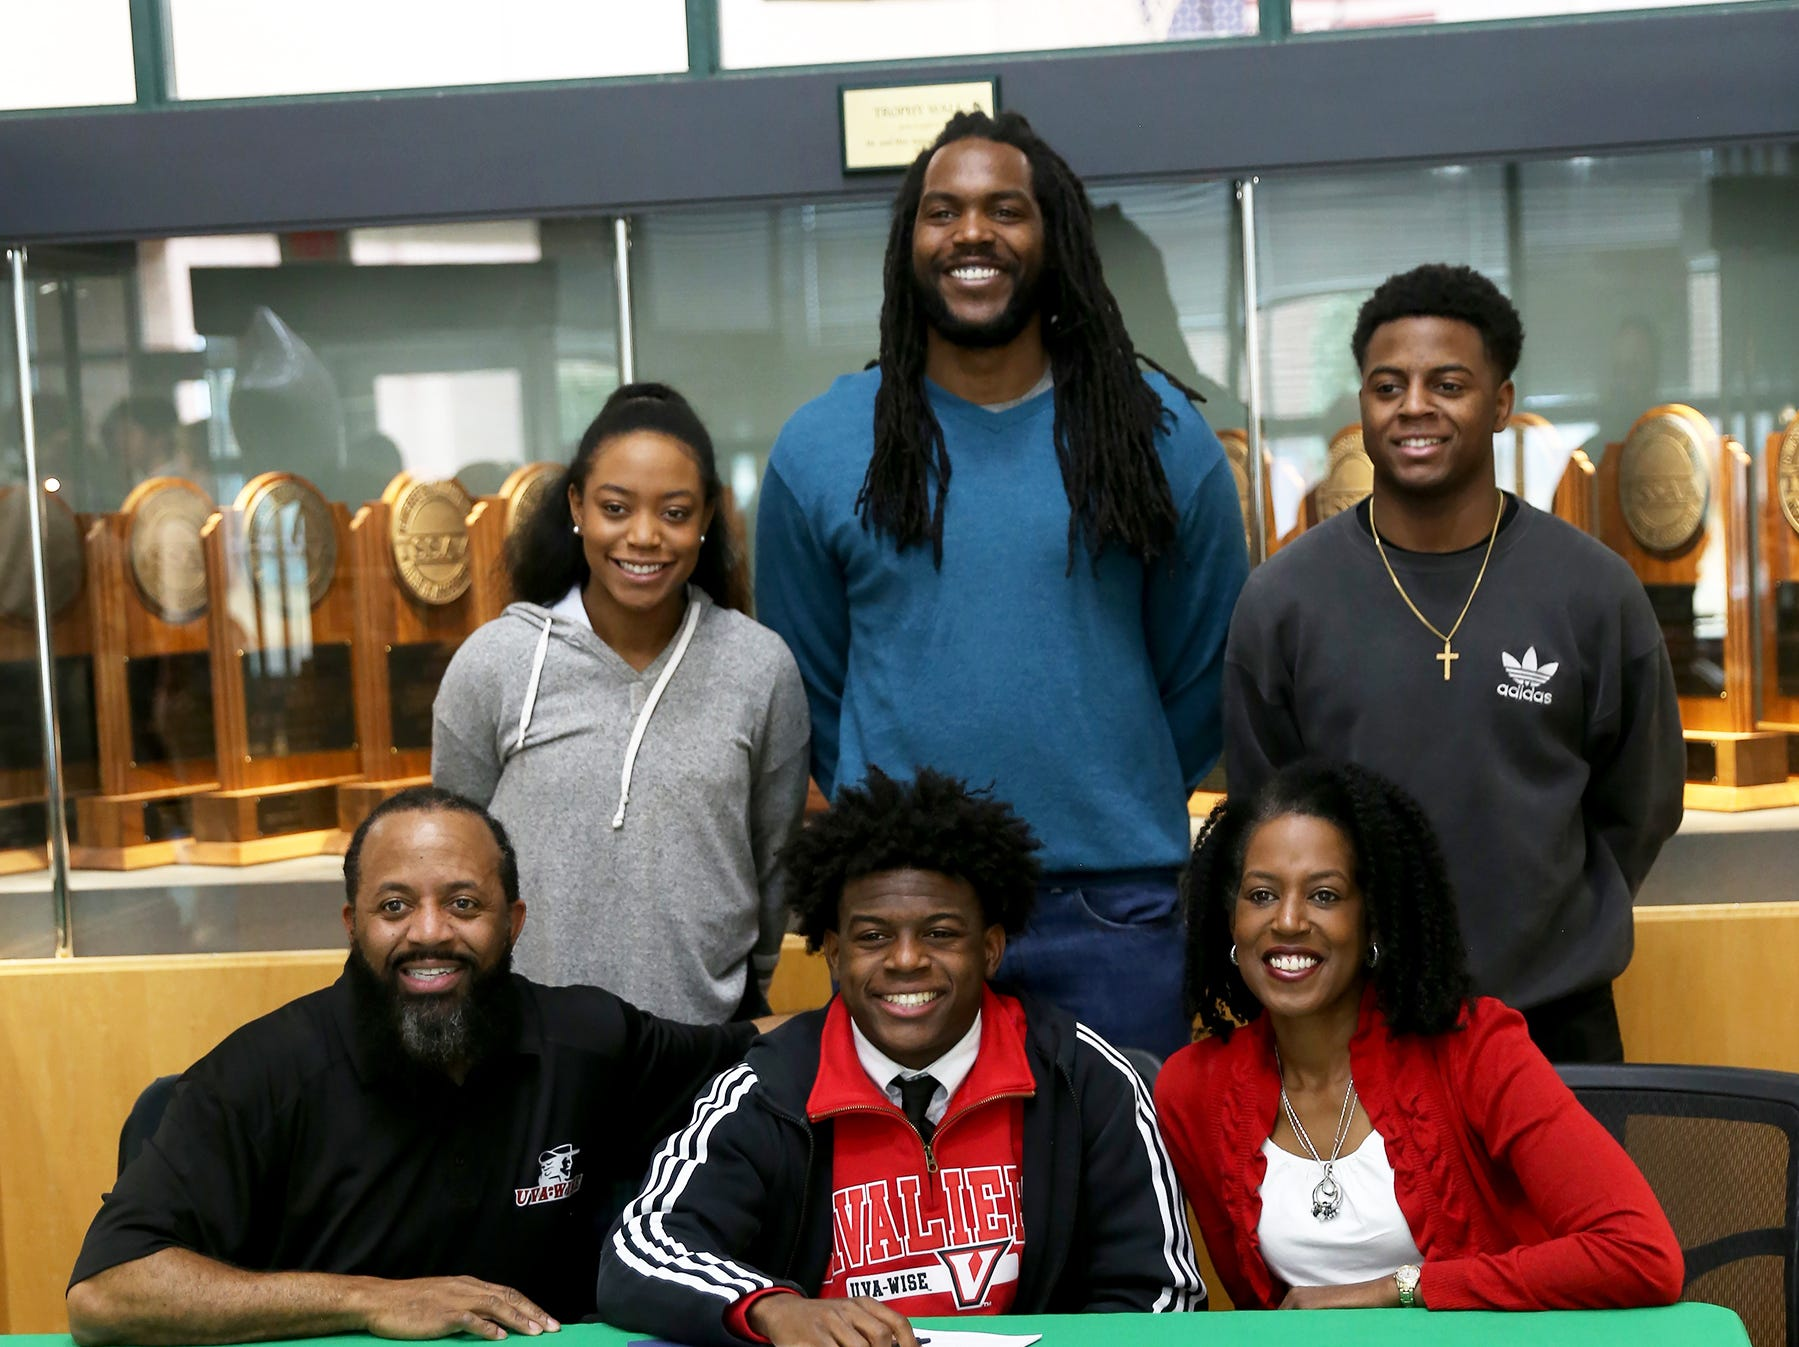 Webb senior running back/defensive back Jahlil Jefferson signed with University of Virginia's College at Wise on Feb. 6. With him (seated) are his father, Valentino Jefferson, and mother, Nickola Jefferson; (standing, from left) sister Jasmine Jefferson; brothers Josh Gregory and Juwaan Jefferson.